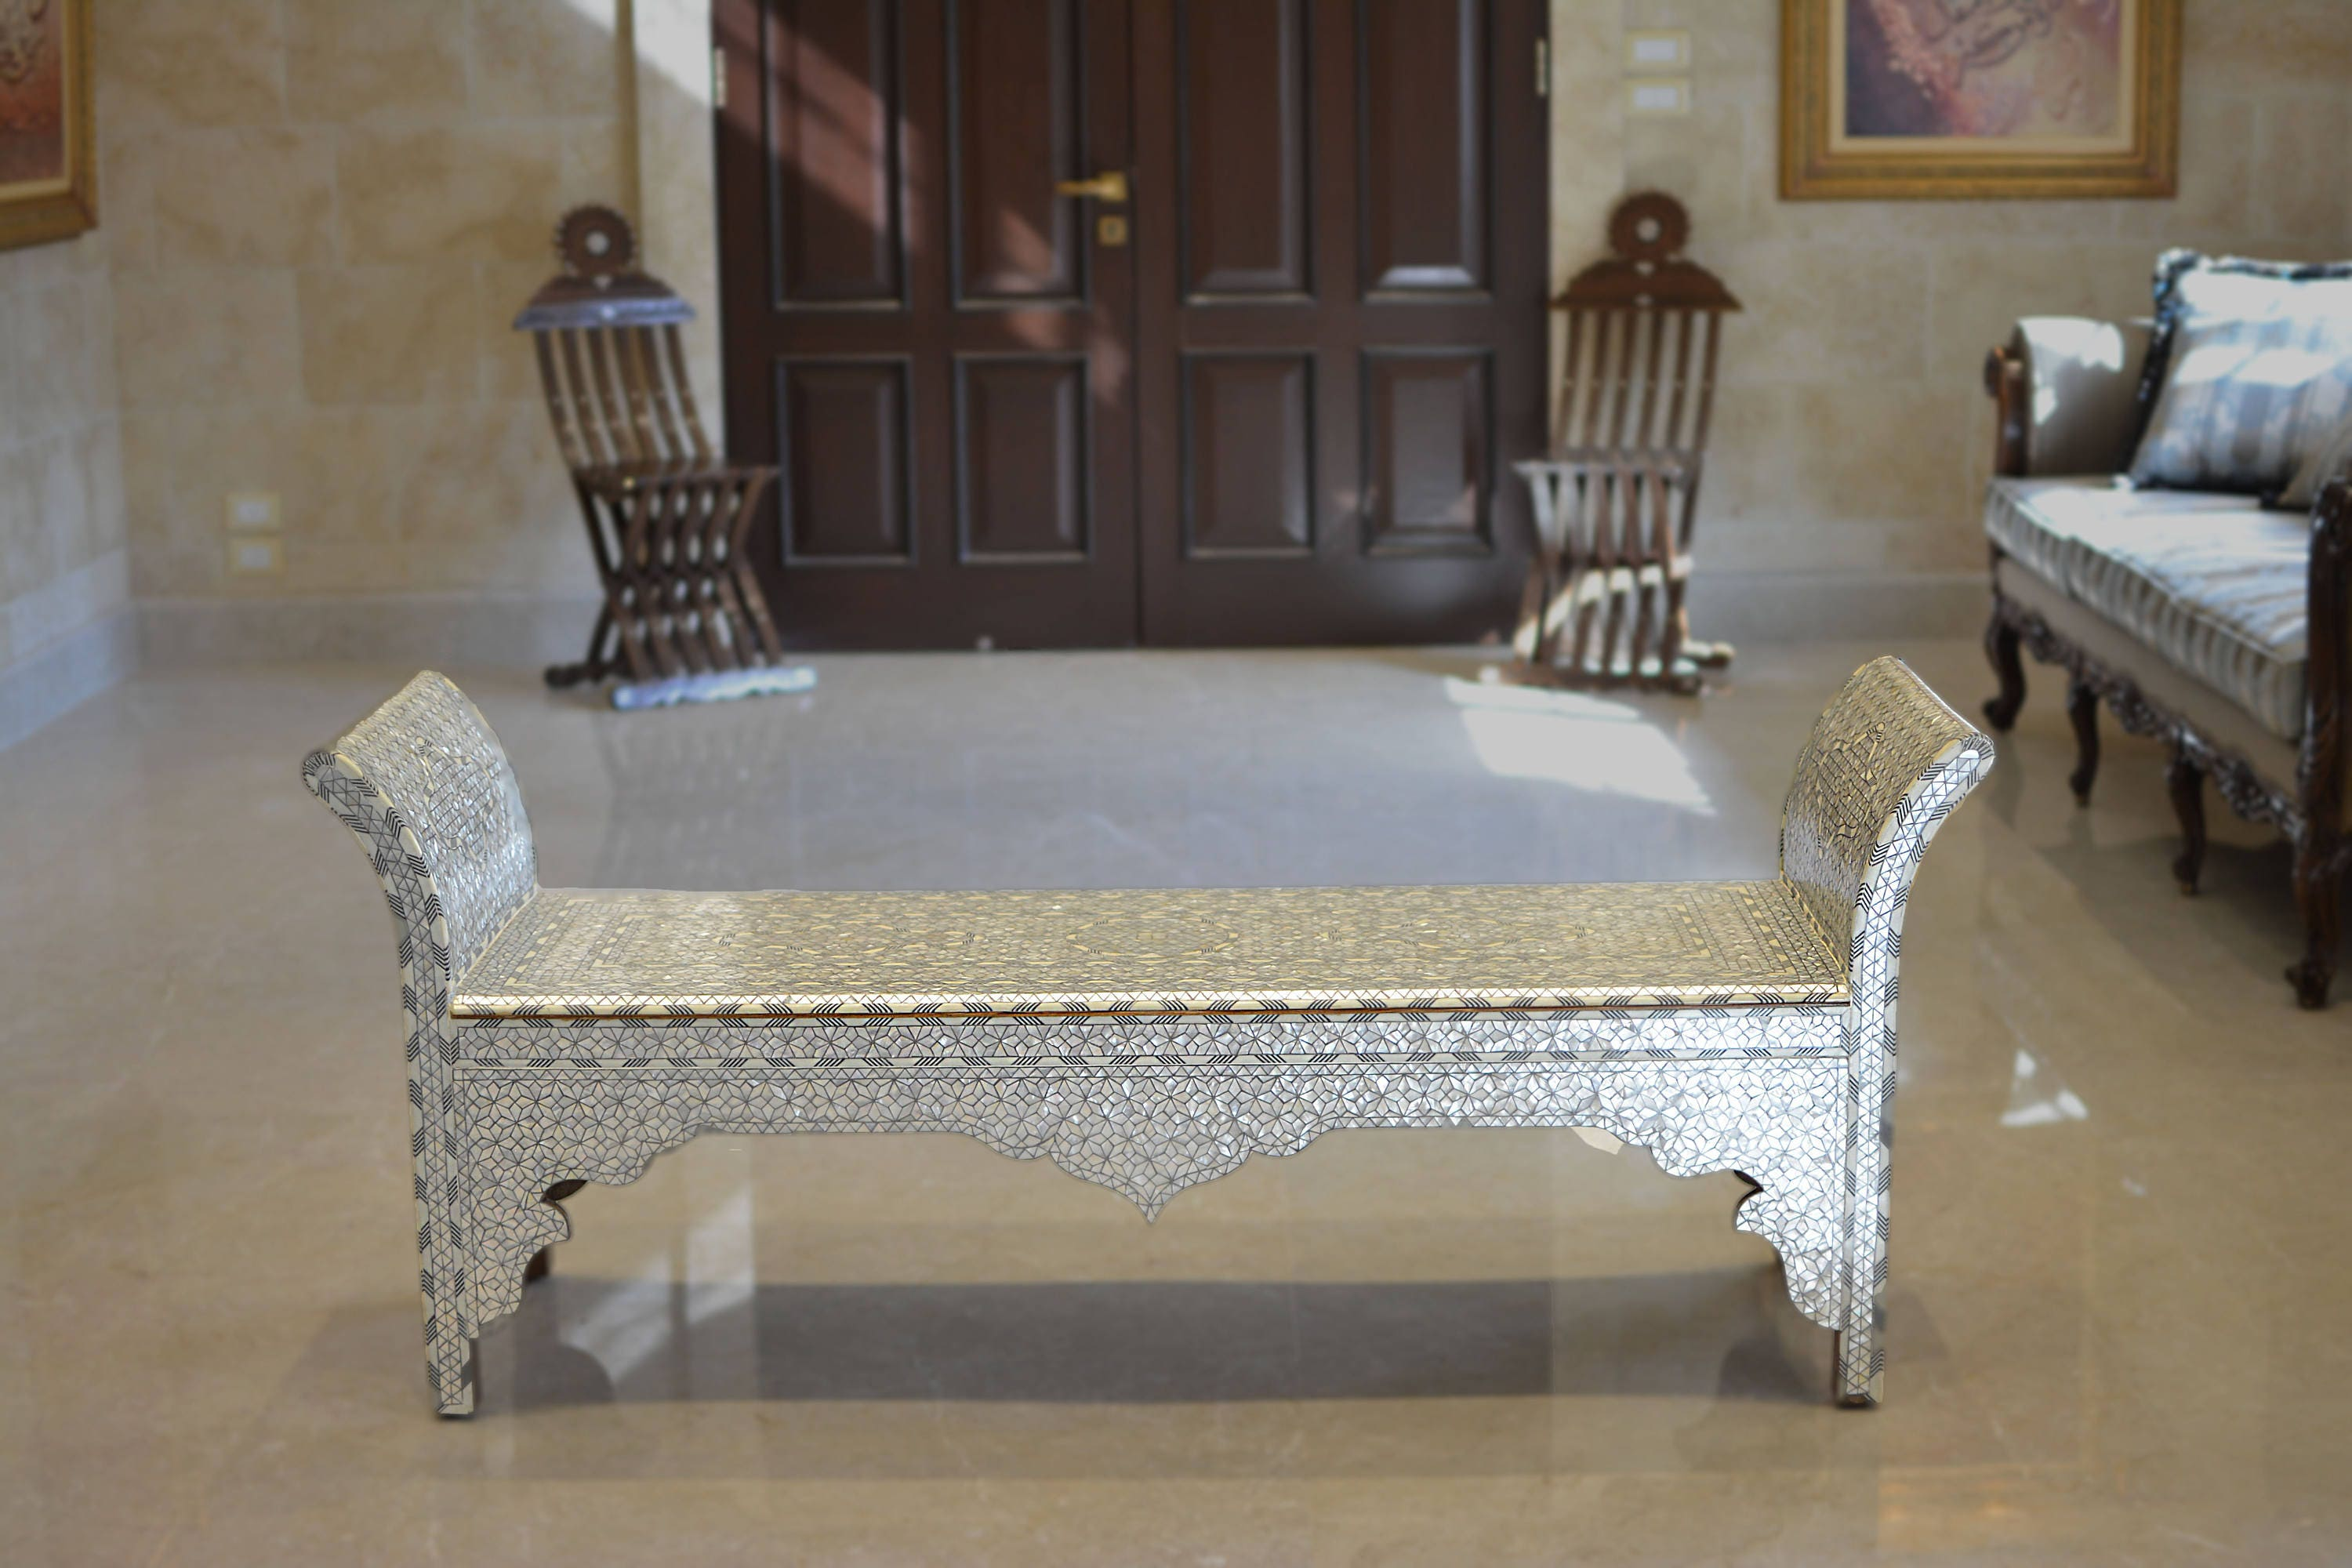 Bench Hand Bench Bench With Mother Of Pearl Inlay